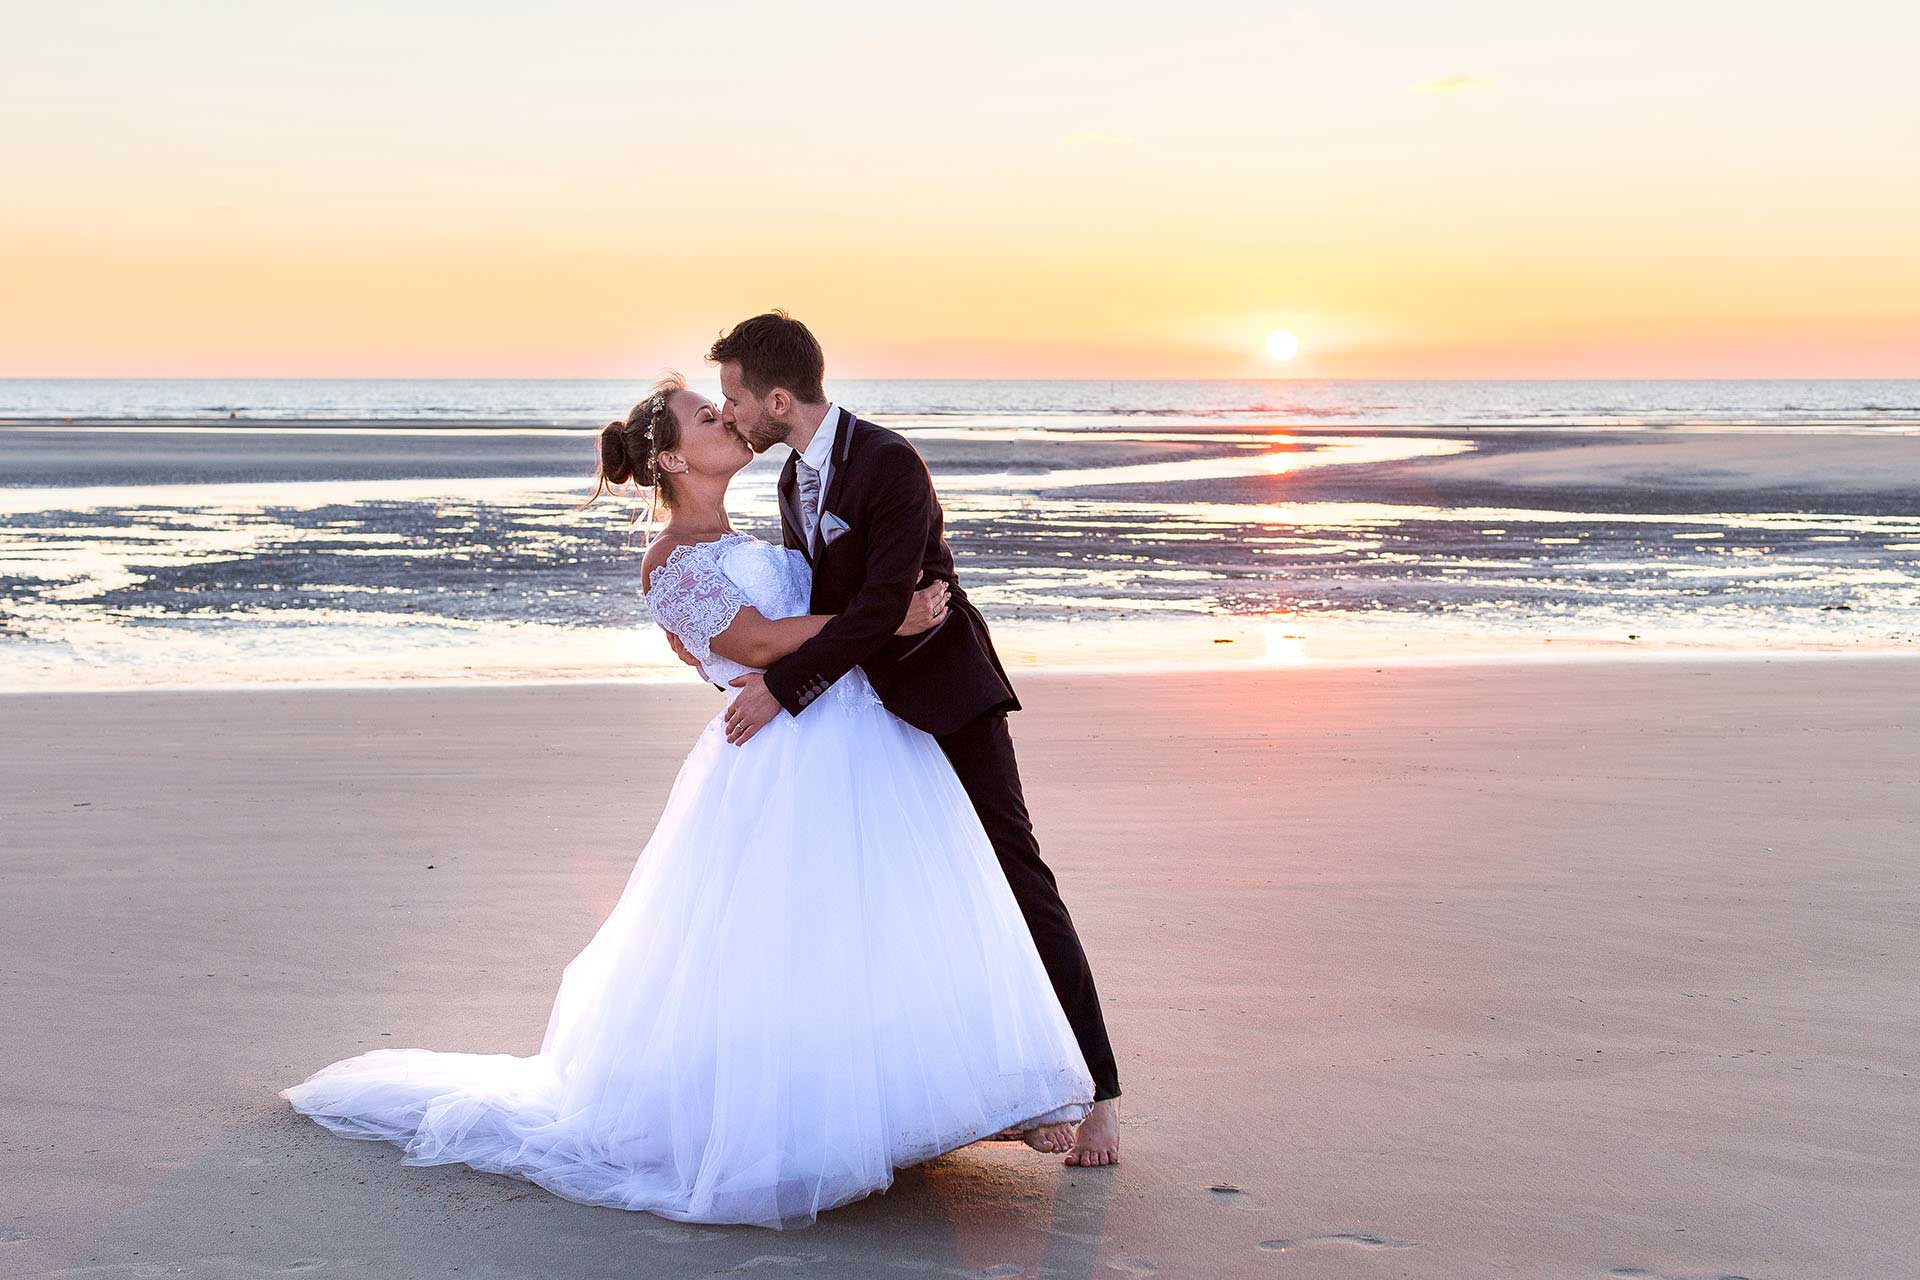 Shooting photo After Day de mariage sur la plage